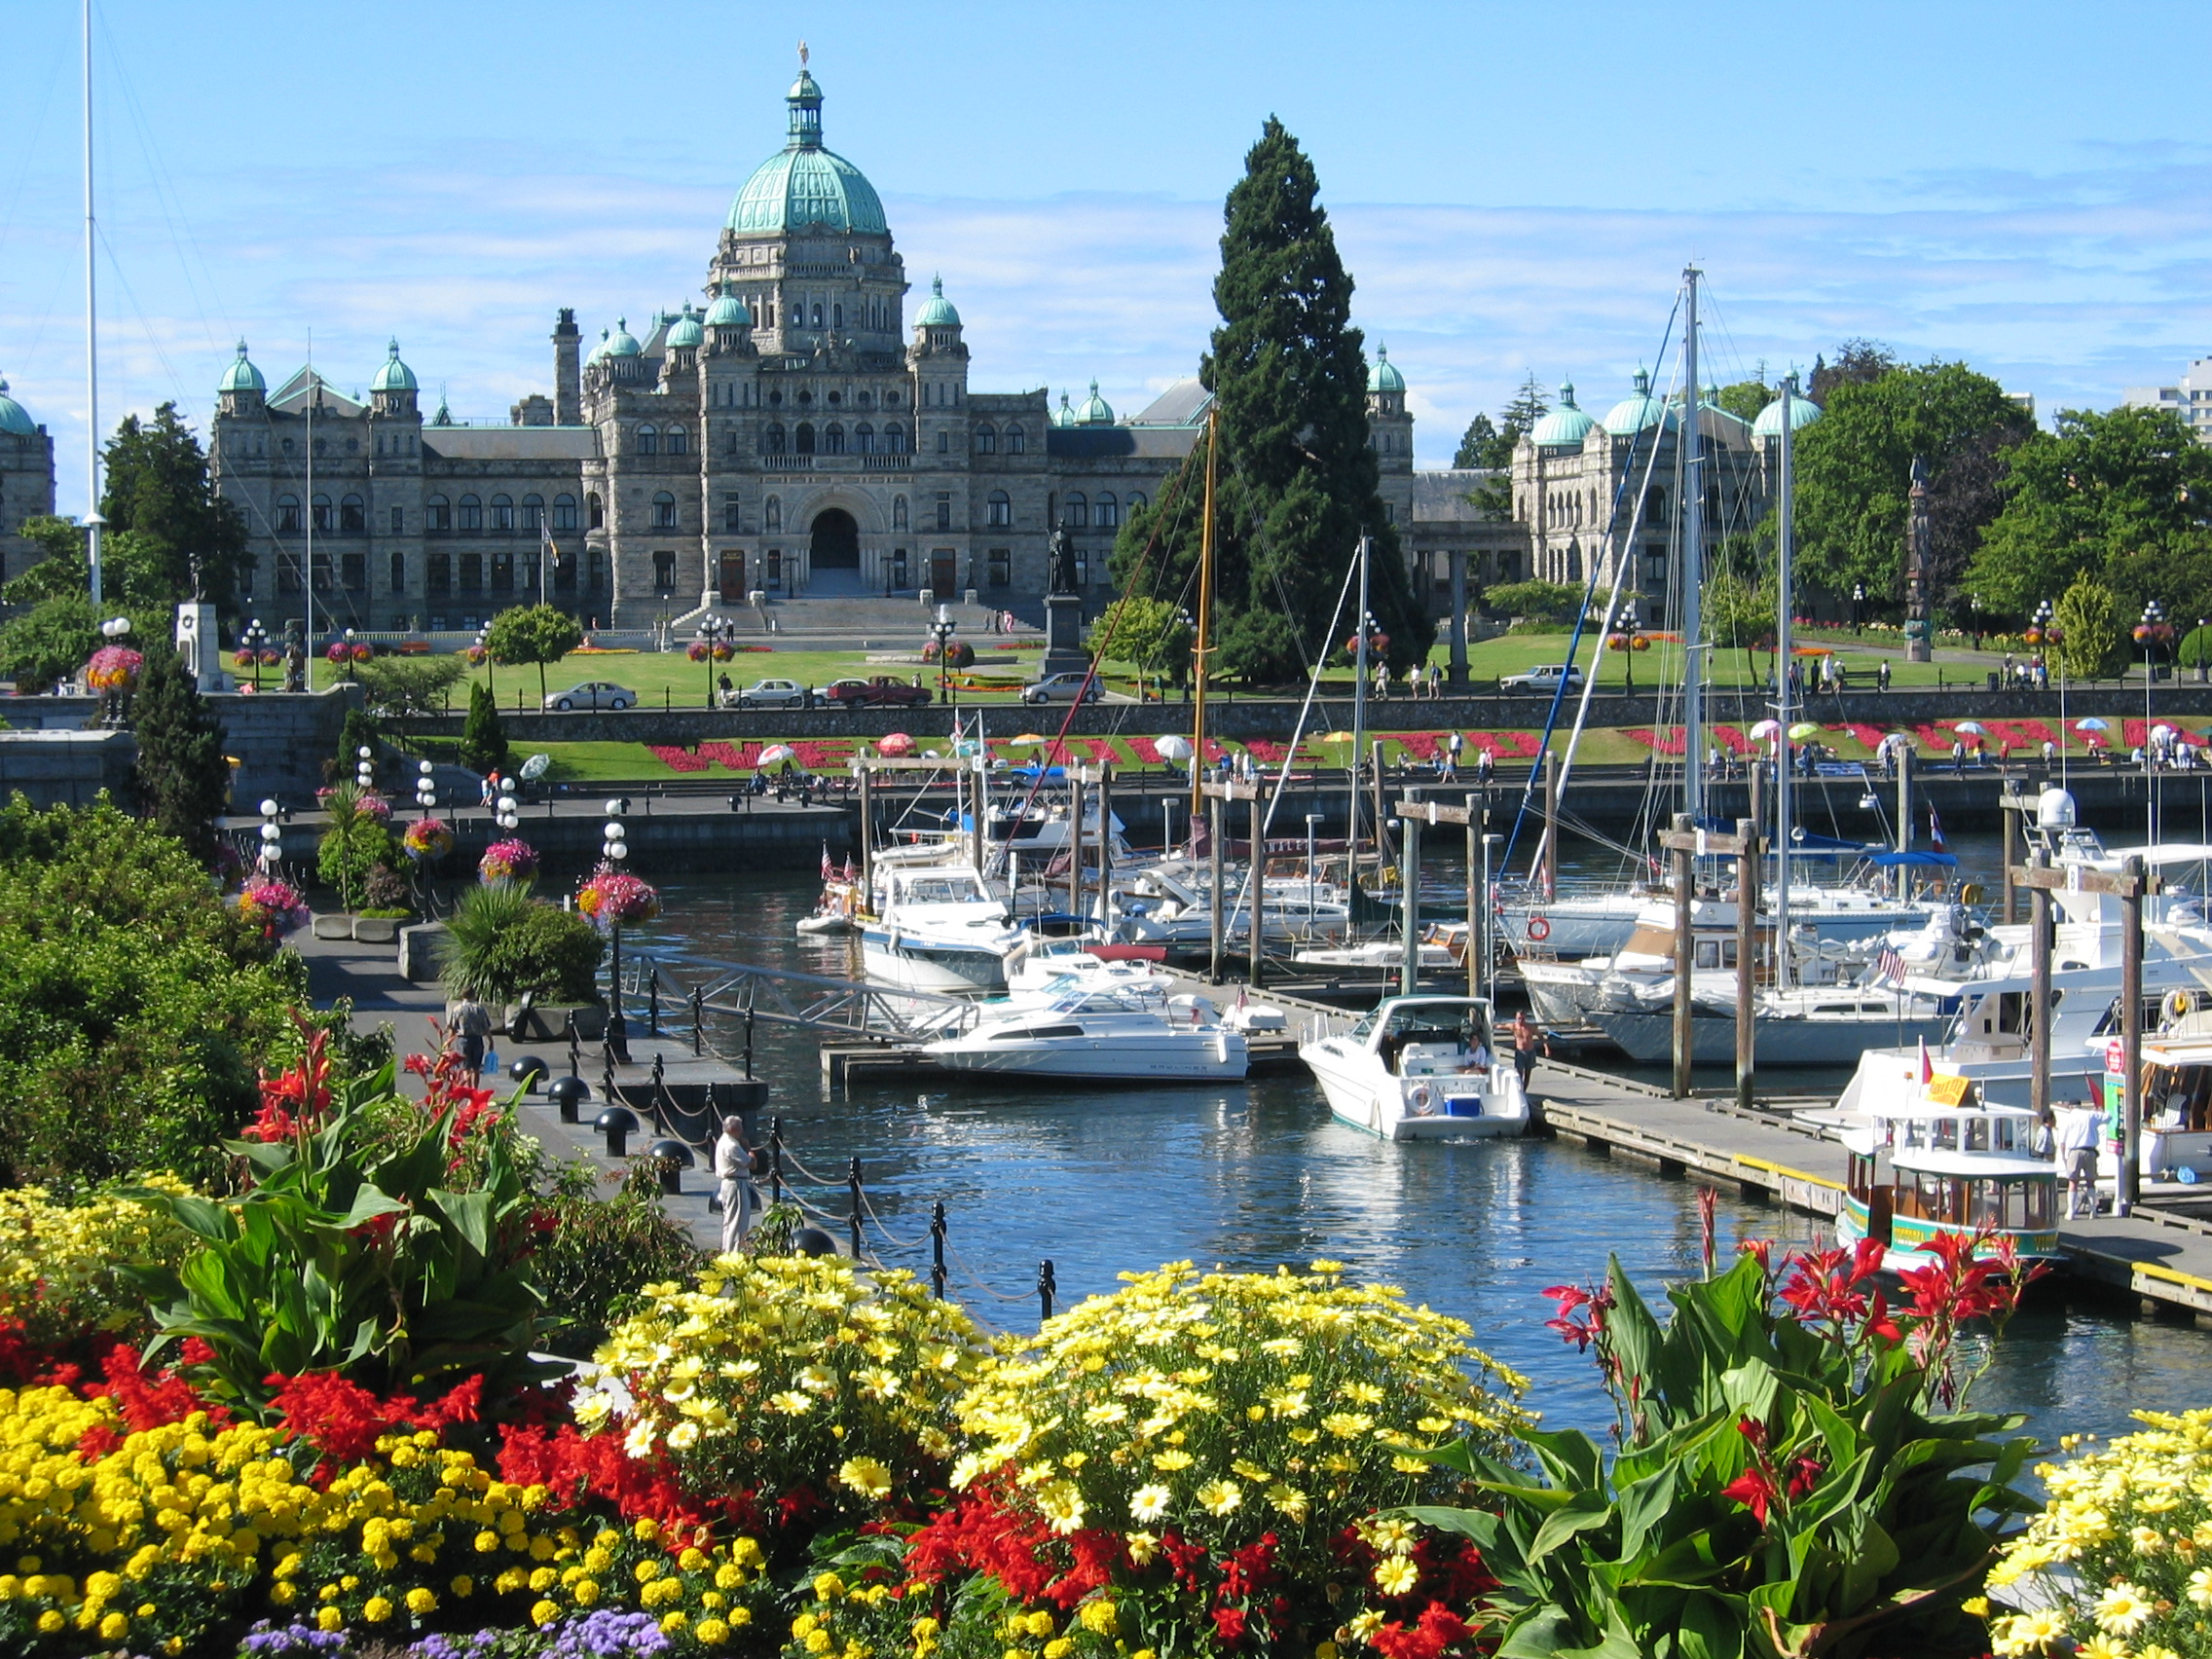 A view of the the harbor with the capitol building in the background in Victoria, BC